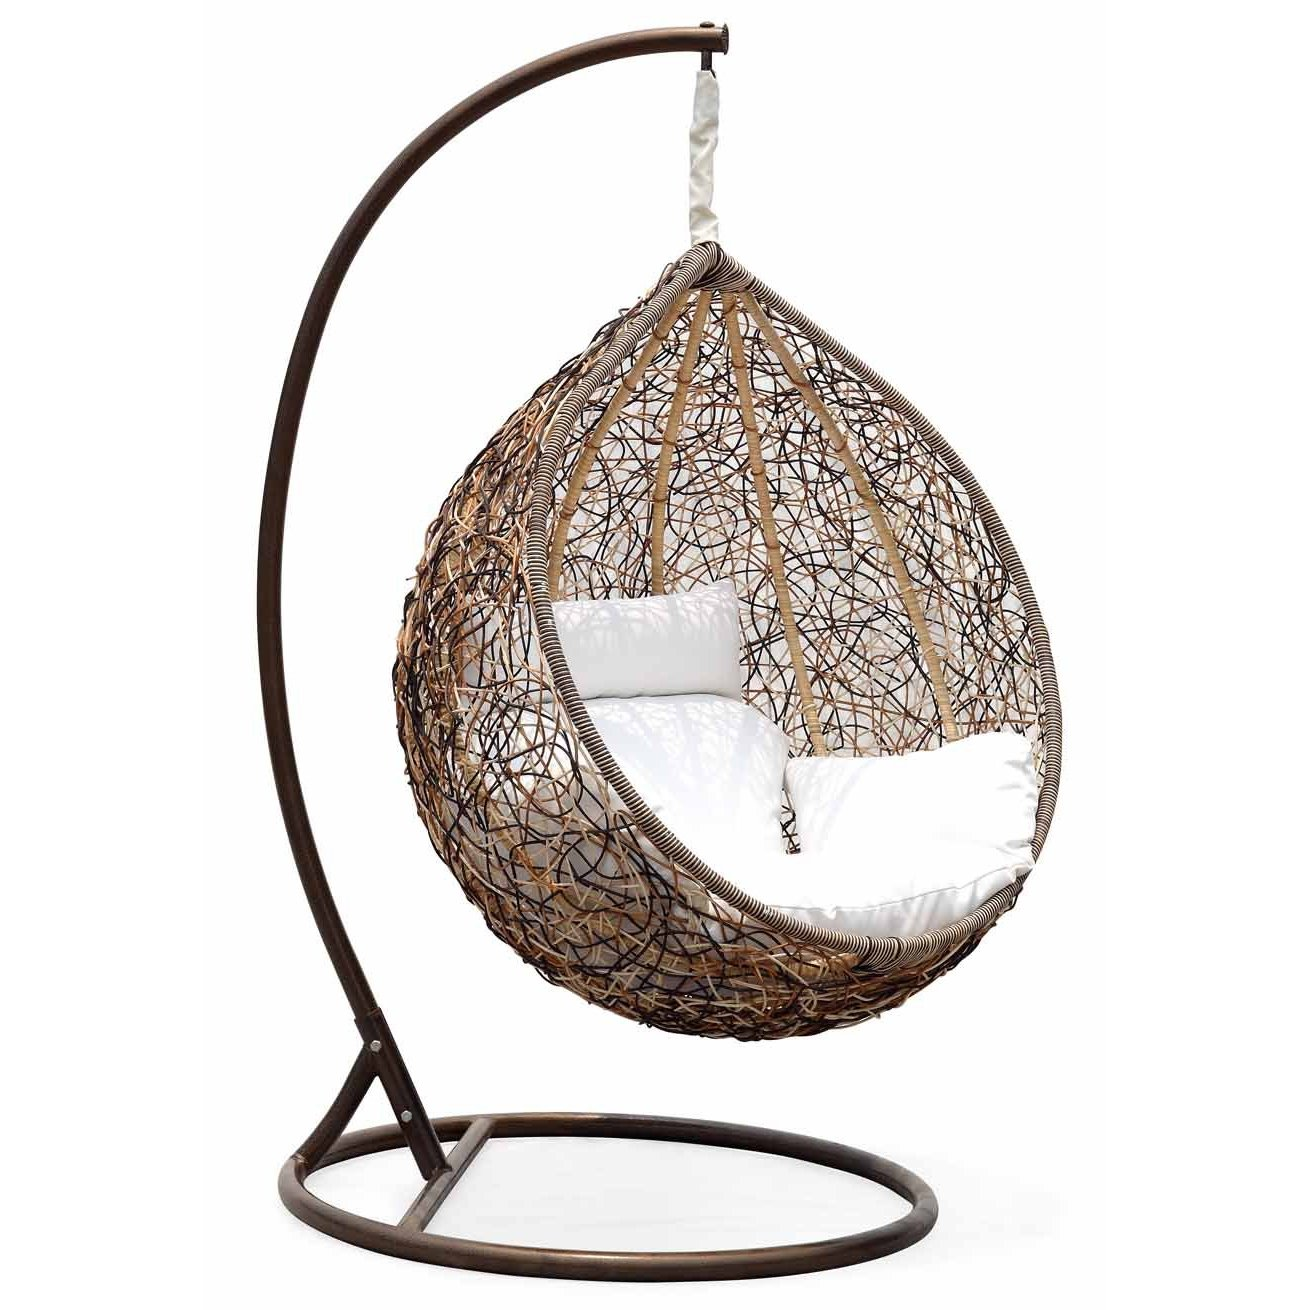 Hanging Chair Amazon Parsons Slipcover Daly Designs Outdoor Furniture